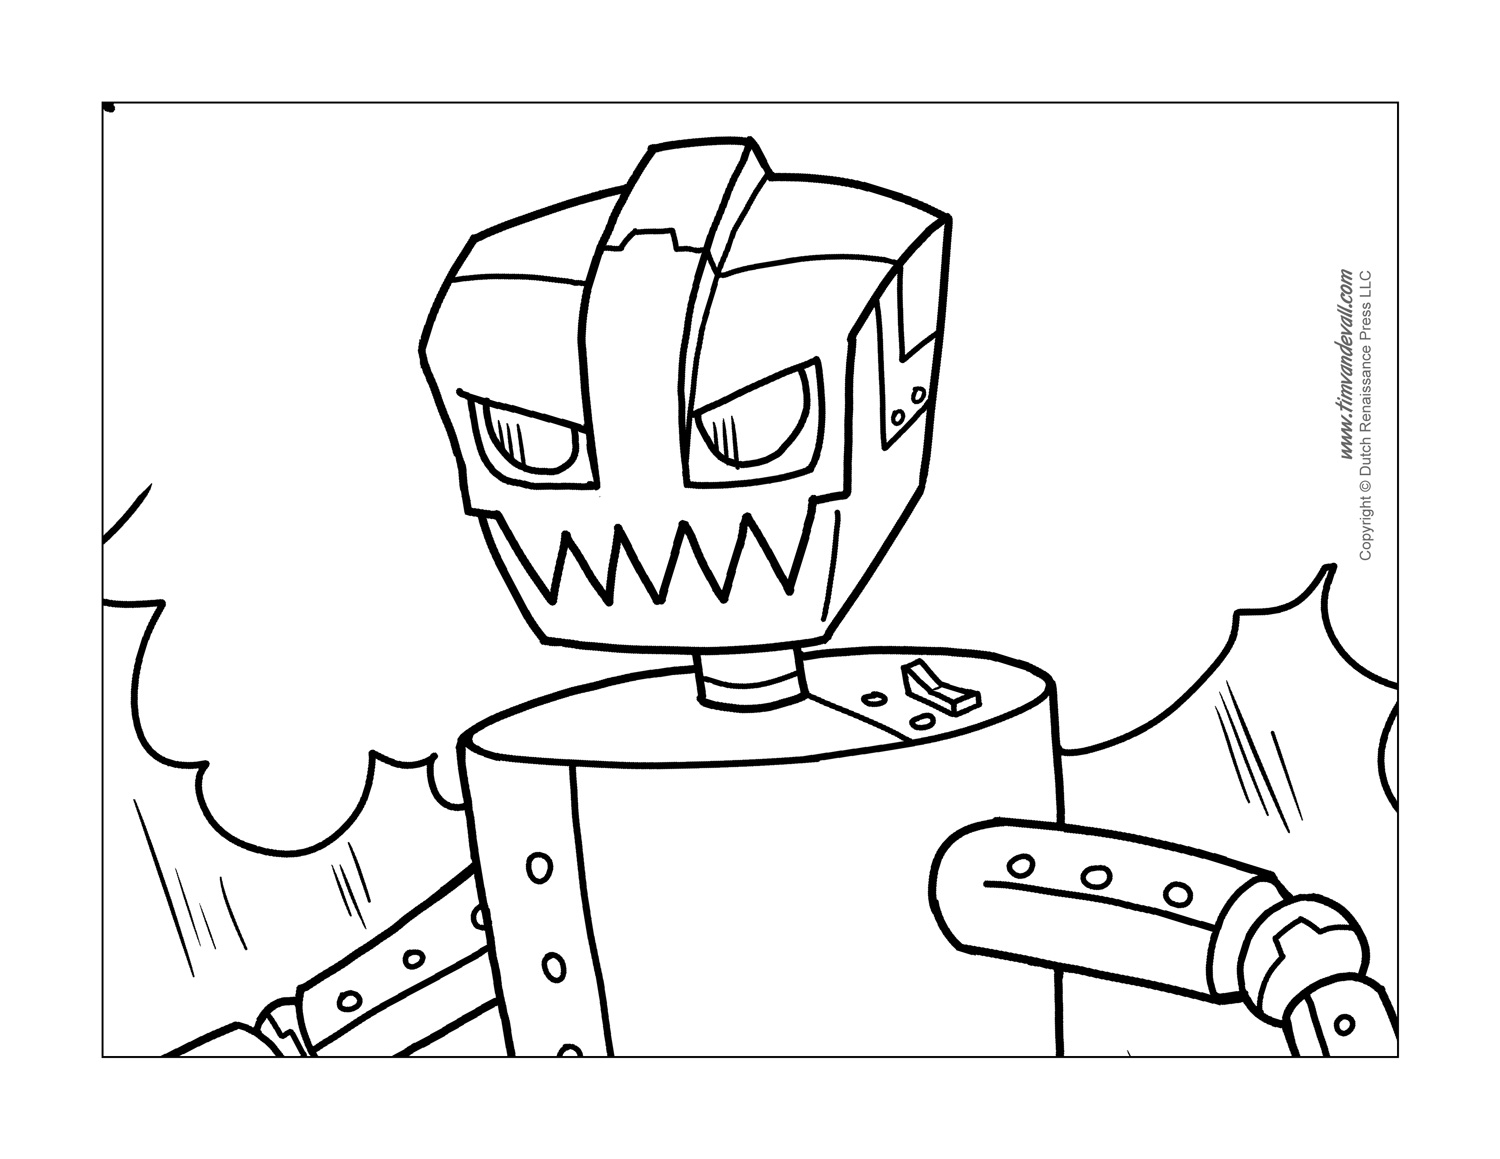 Printable Robot Coloring Pages Coloring Pages for Kids